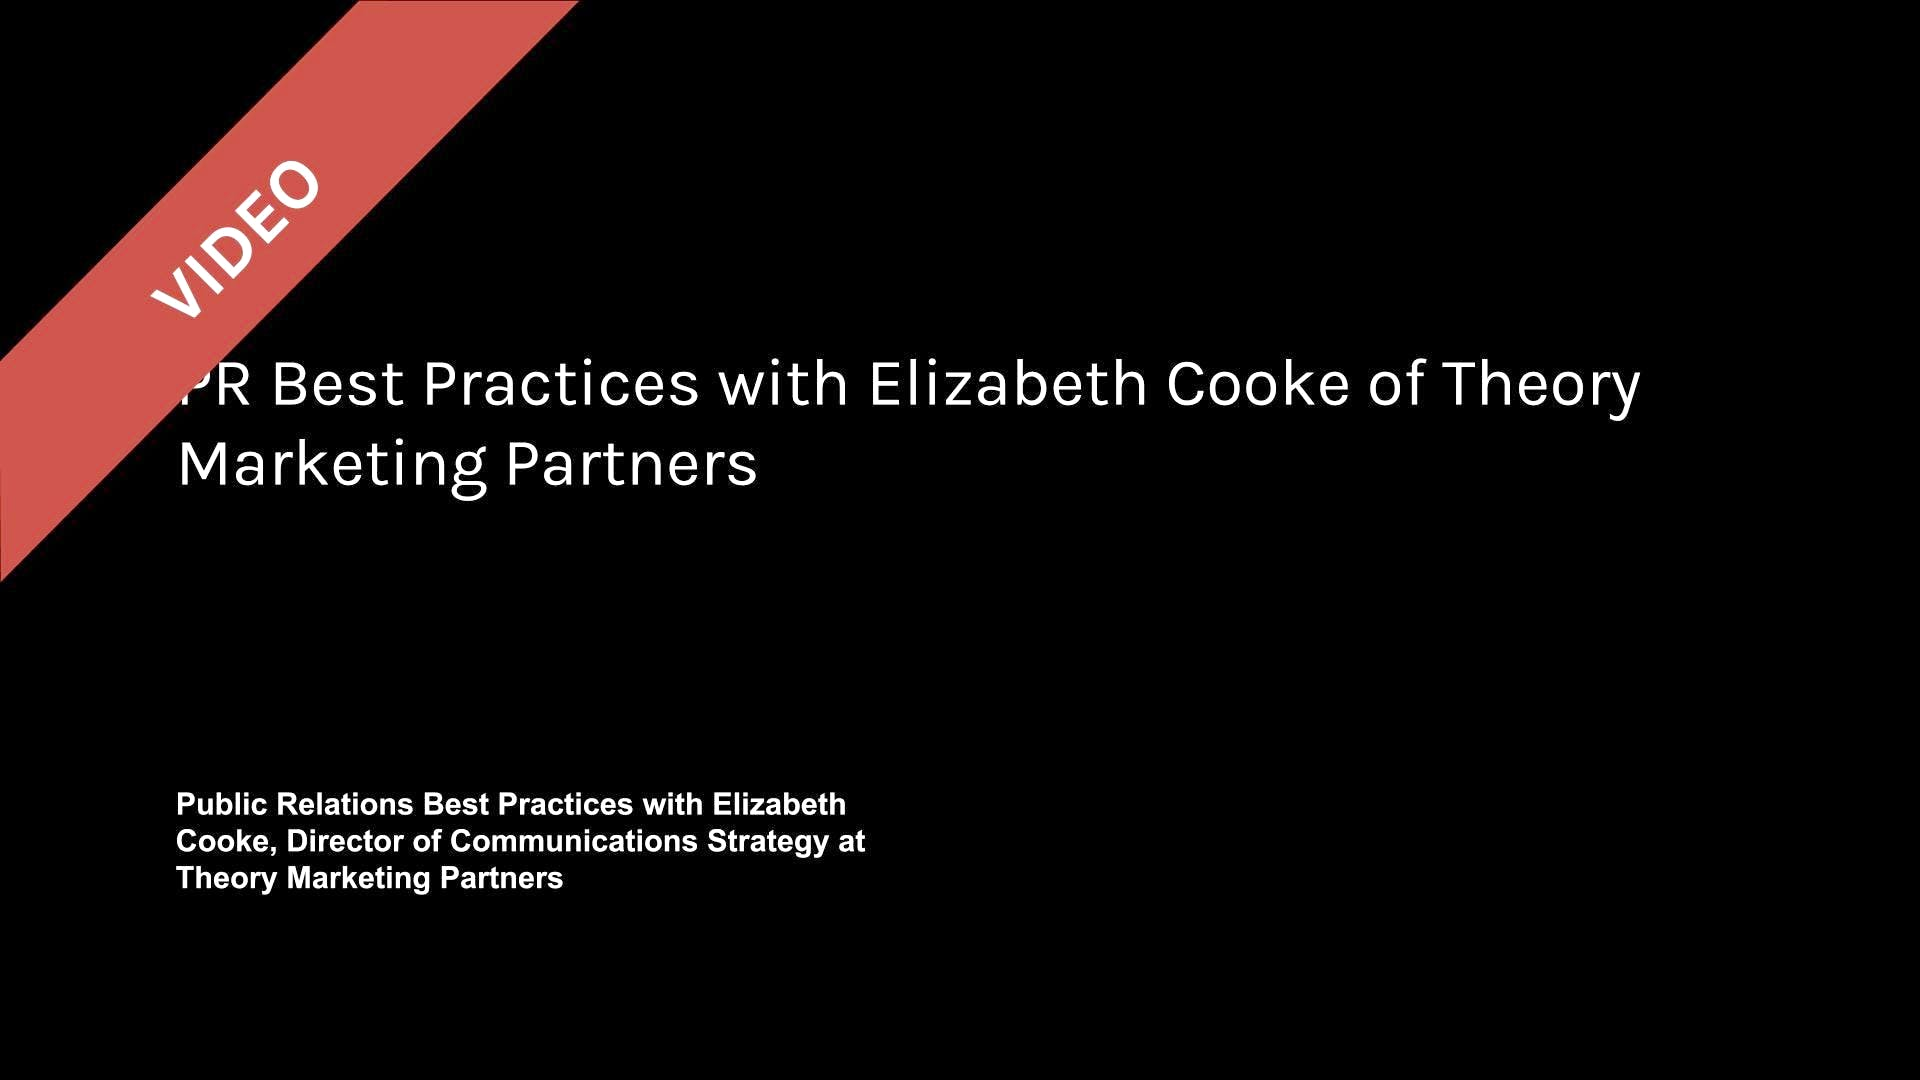 PR Best Practices with Elizabeth Cooke of Theory Marketing Partners